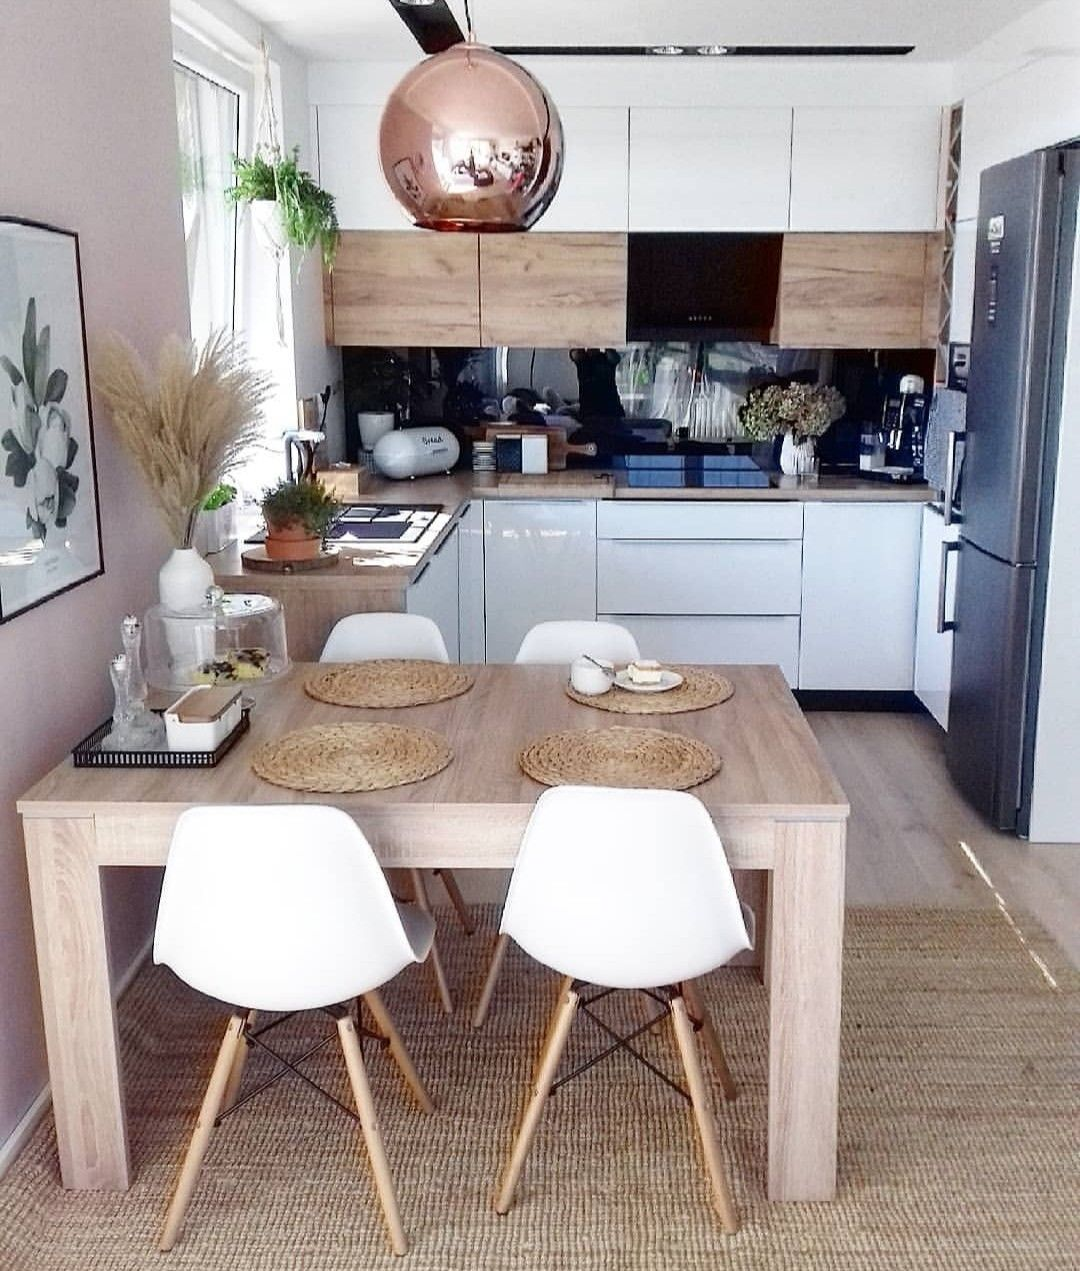 Pin by Onelcolon on Küche   Small apartment kitchen, Dining room ...